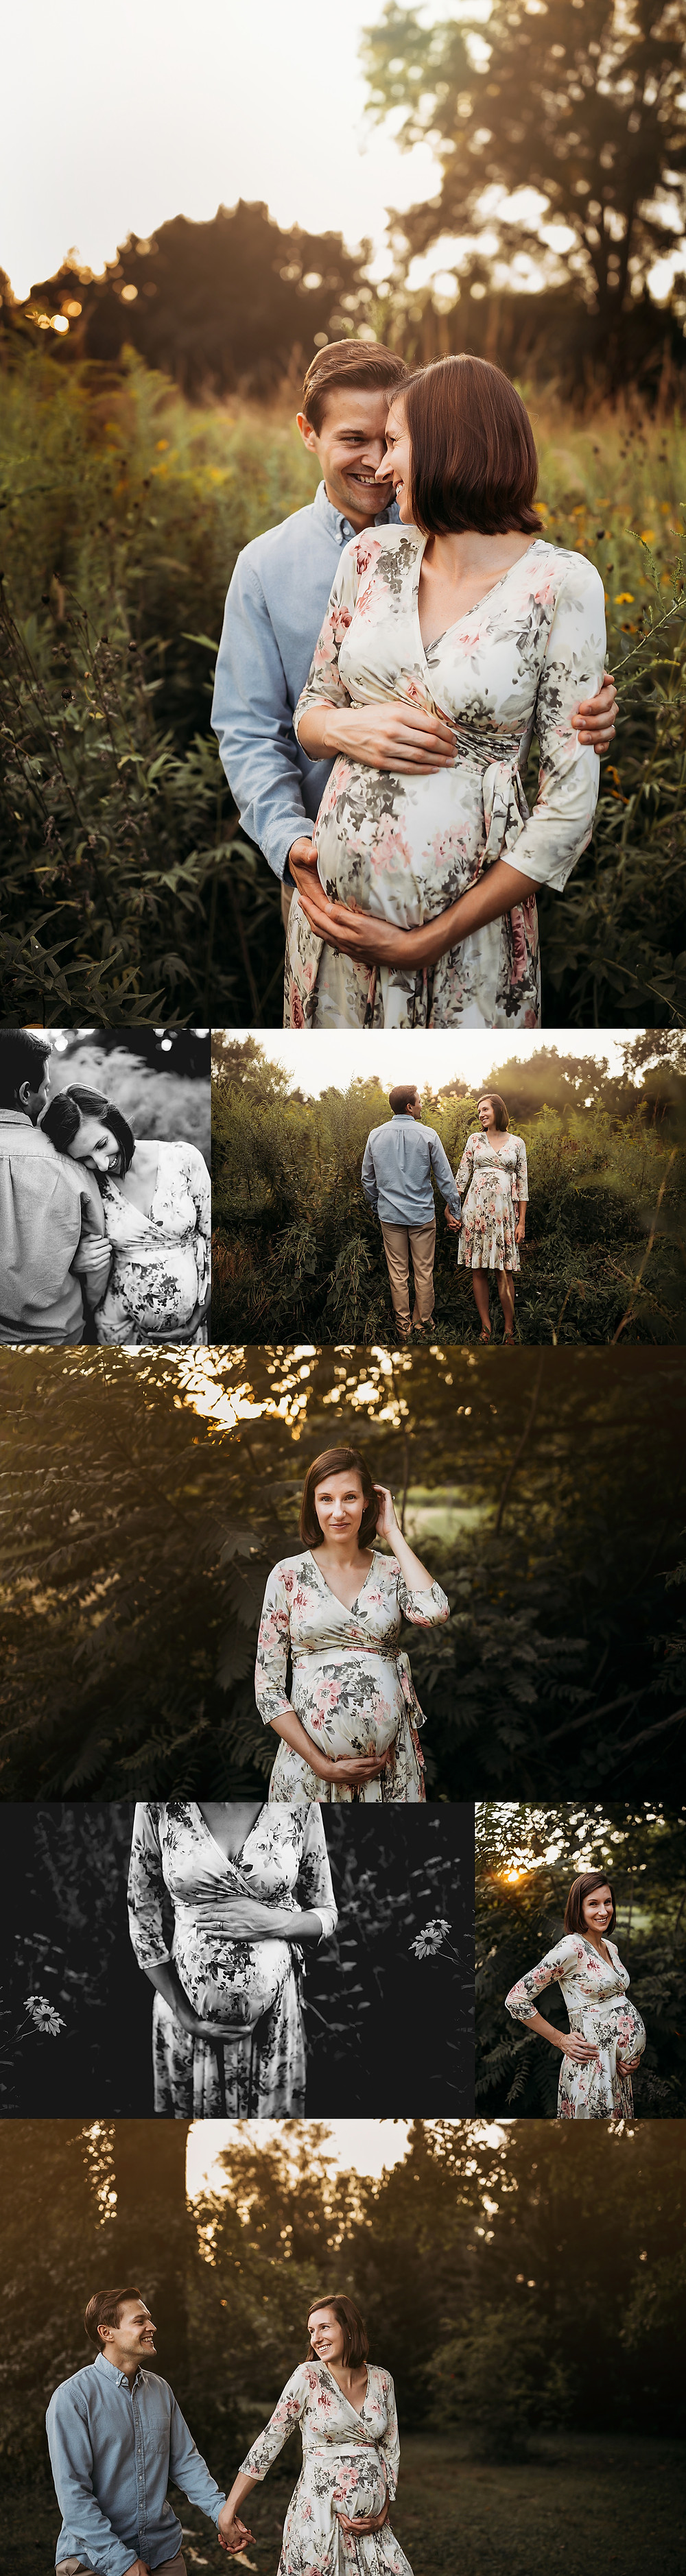 Indianapolis indiana  Maternity Photographer | Alex Morris Design | Baby